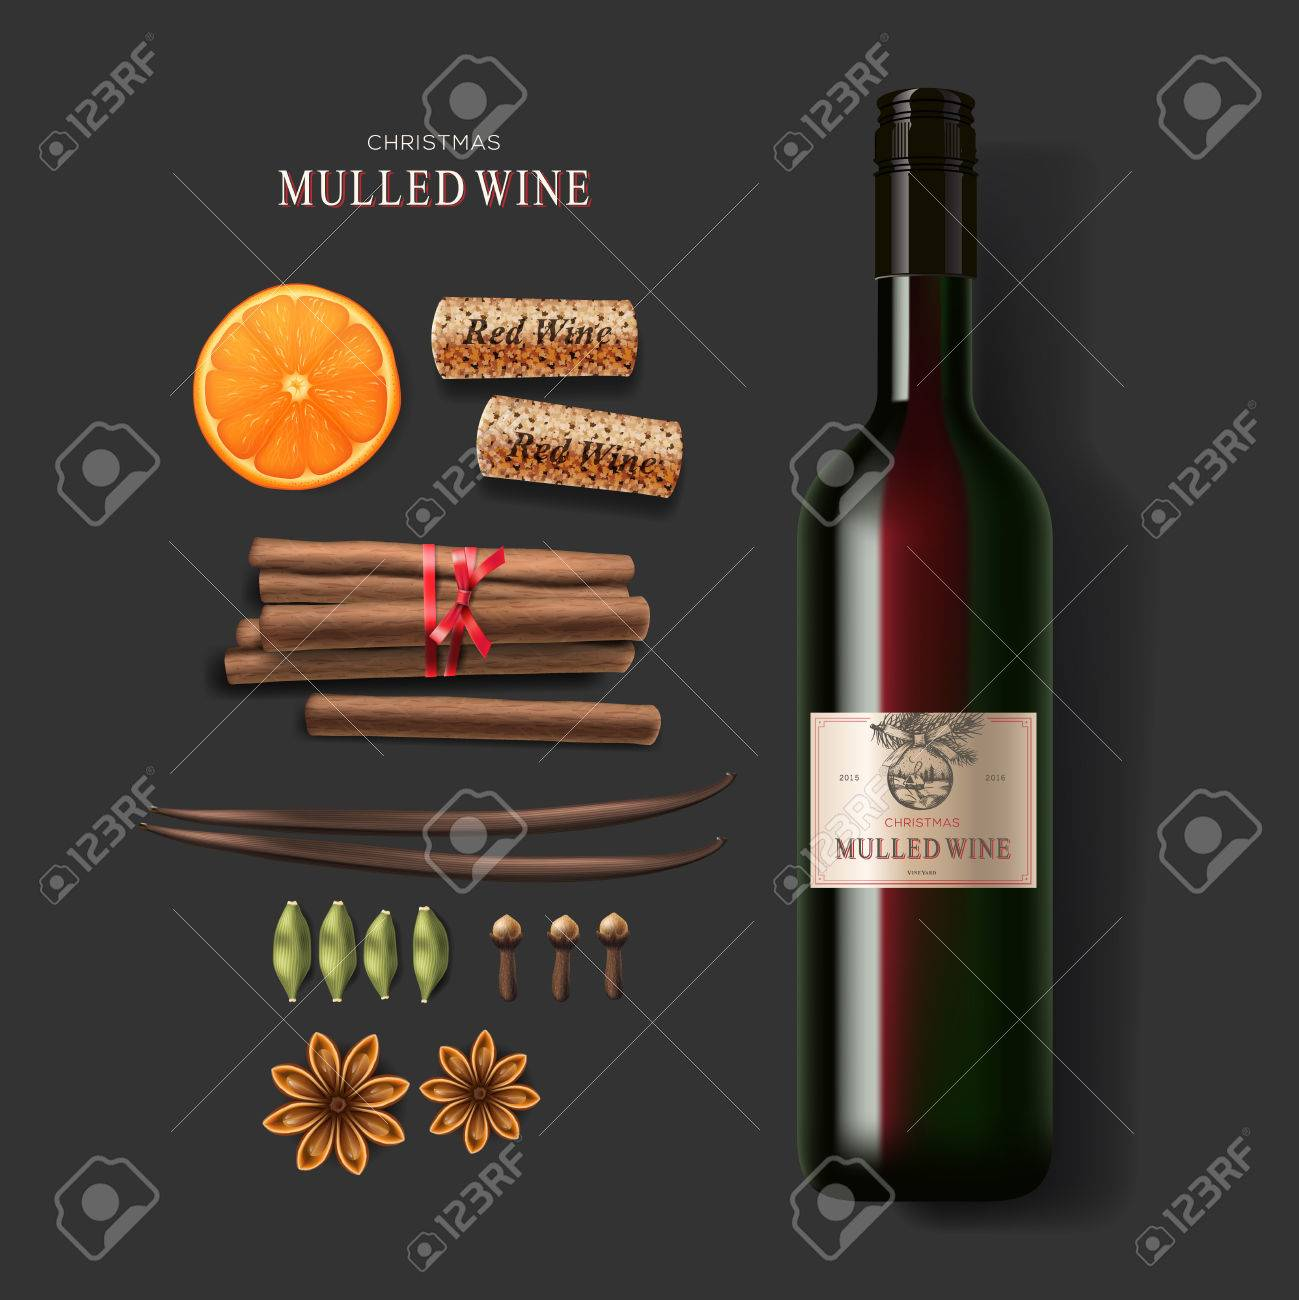 Christmas drink mulled wine bottle of wine and ingredients Standard-Bild - 48425172